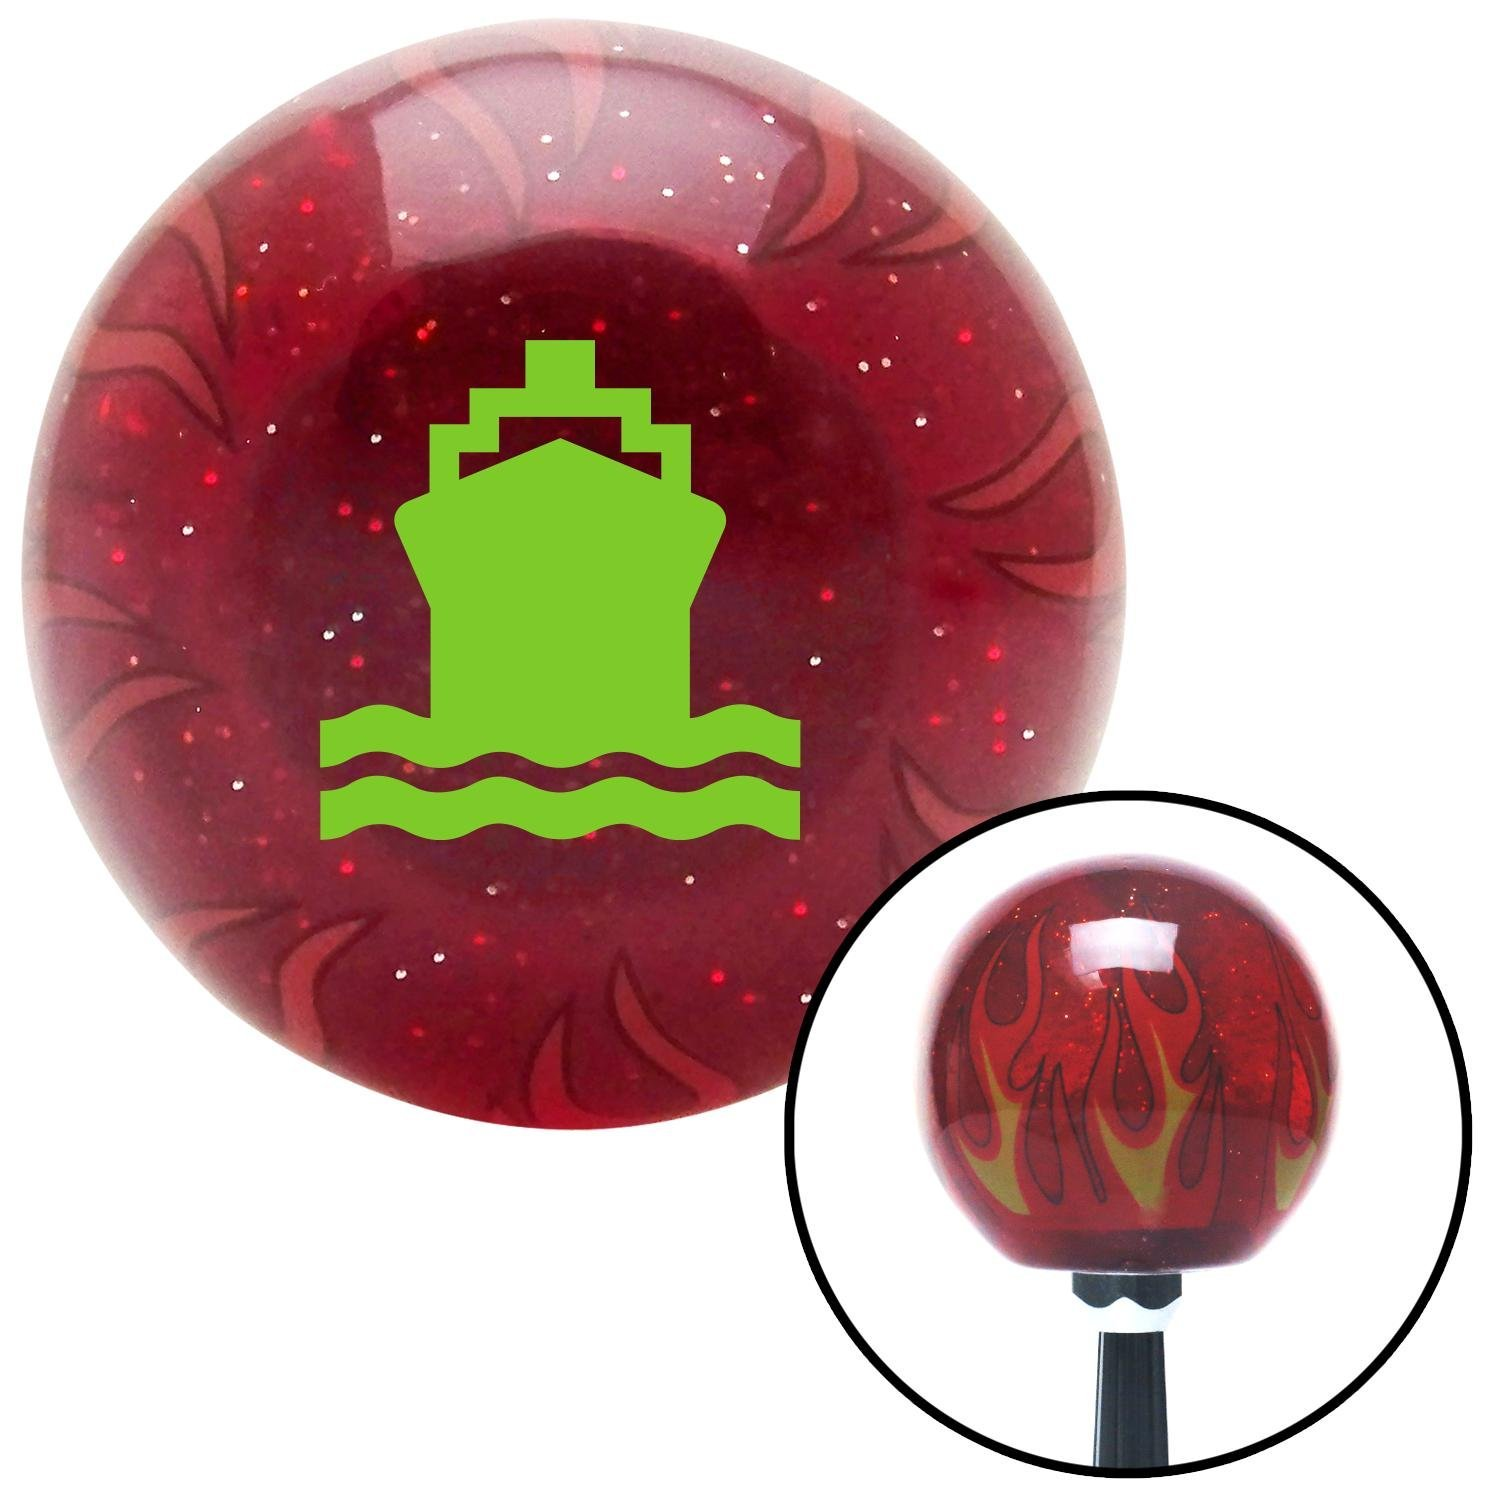 Green Cruiseship American Shifter 240466 Red Flame Metal Flake Shift Knob with M16 x 1.5 Insert